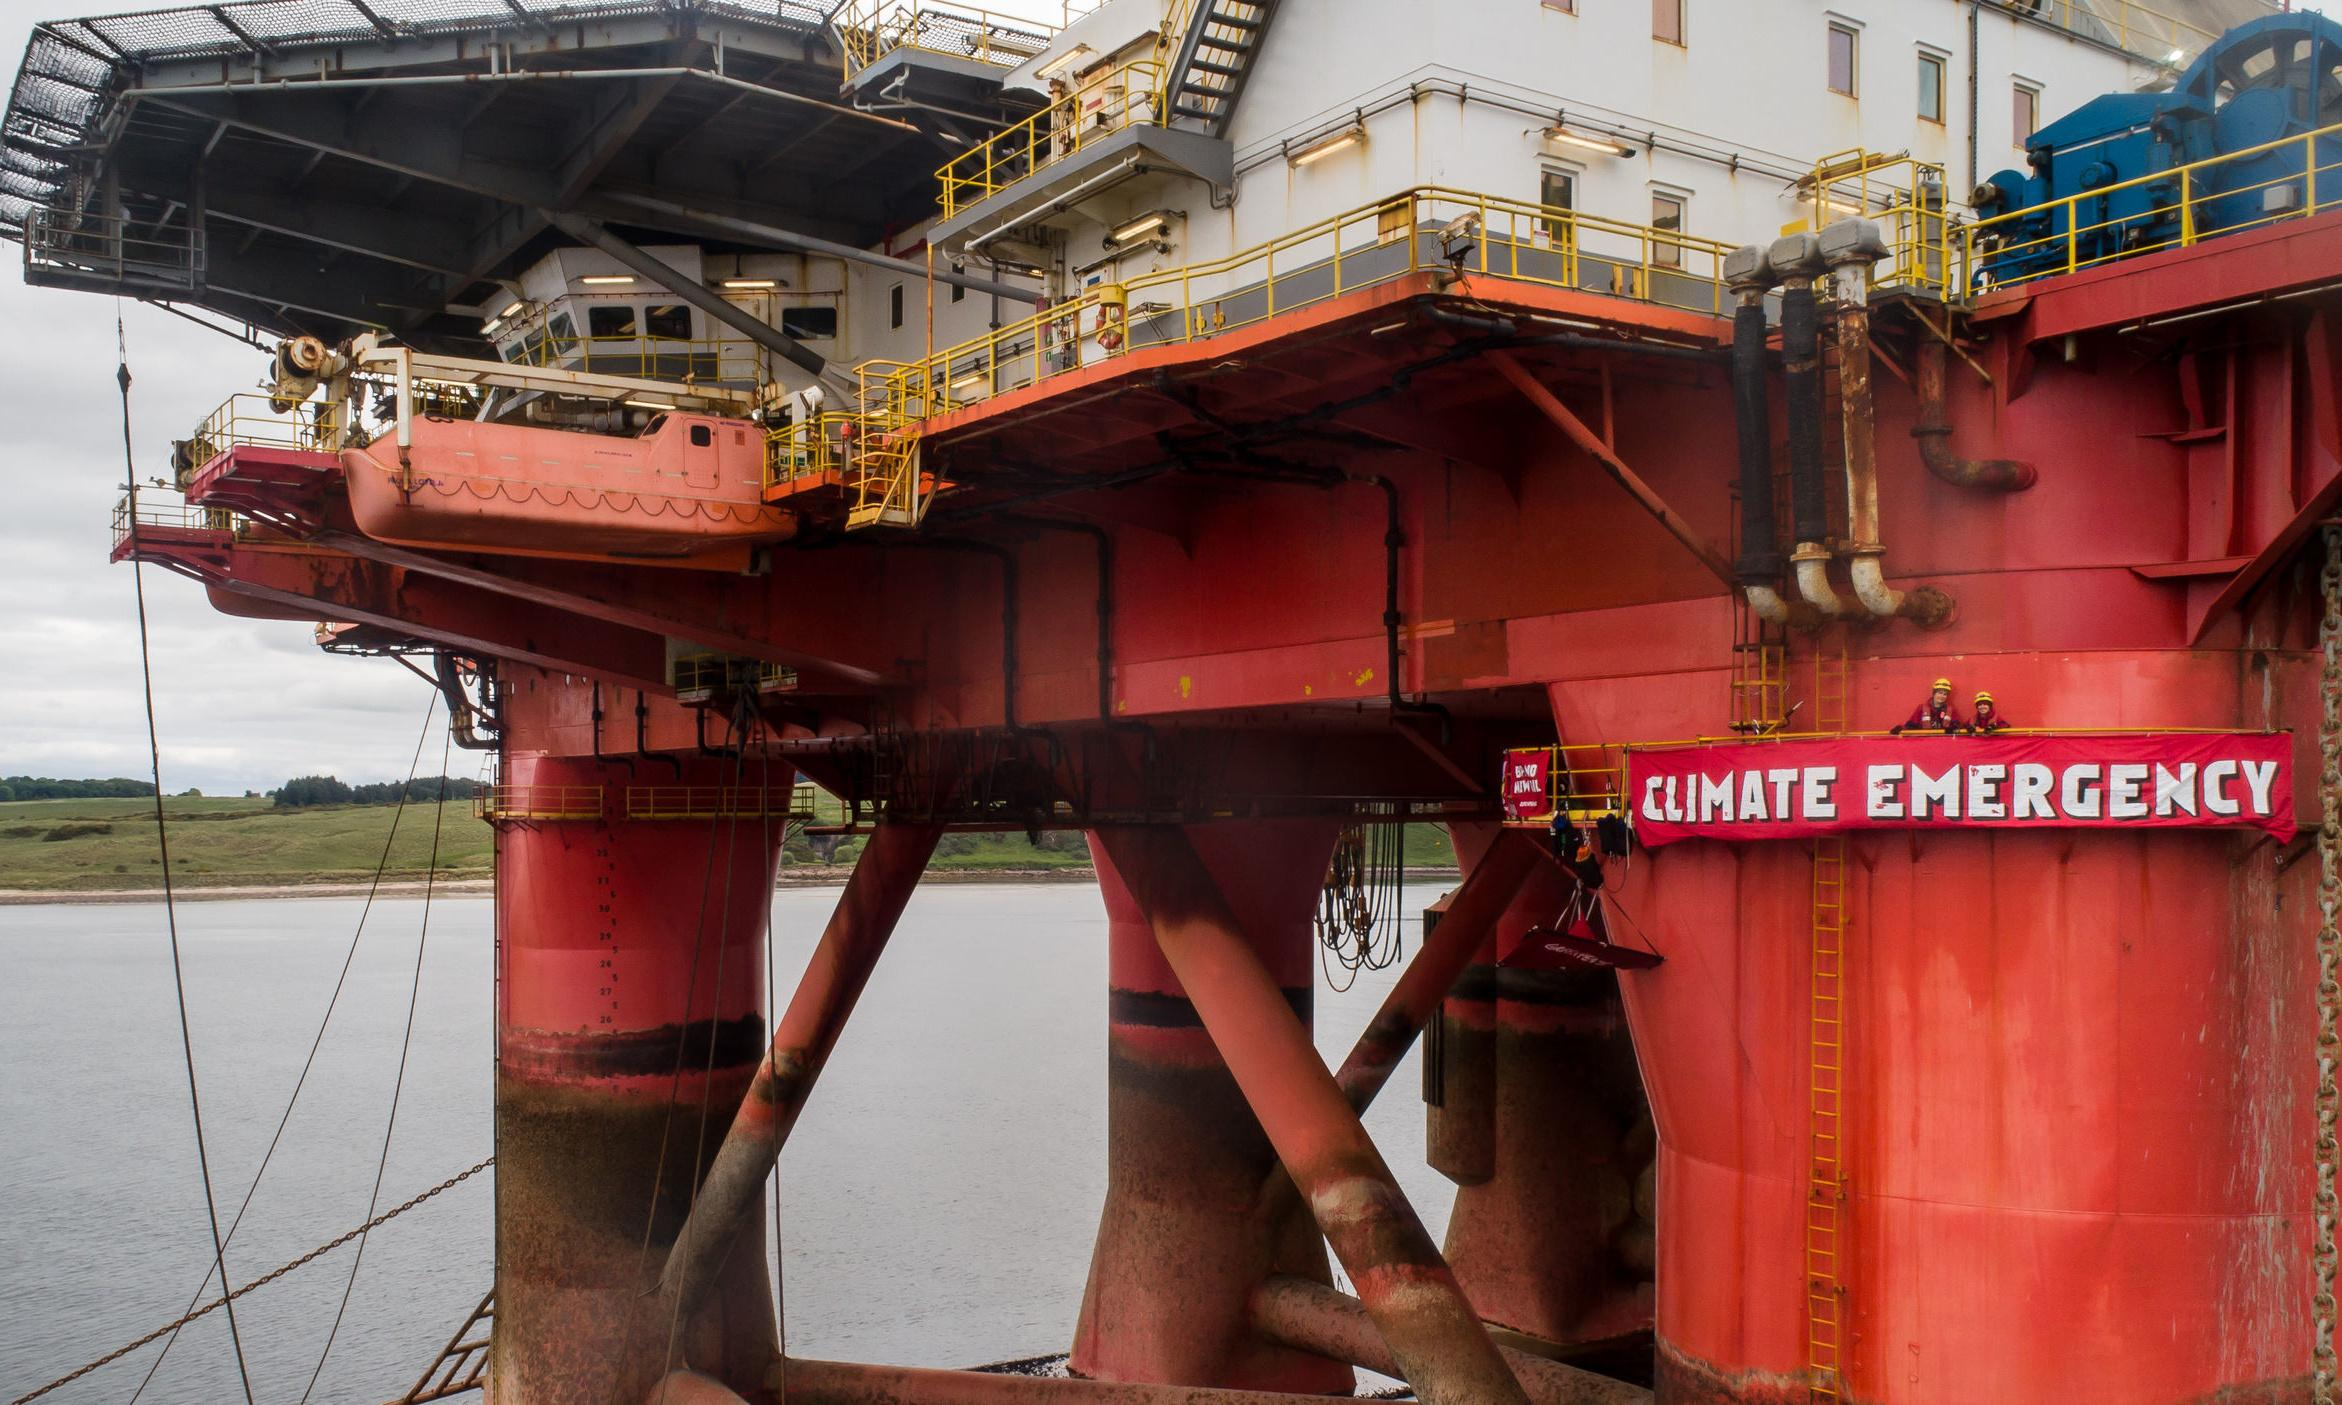 Greenpeace North Sea oil rig protest ends as police arrest two men